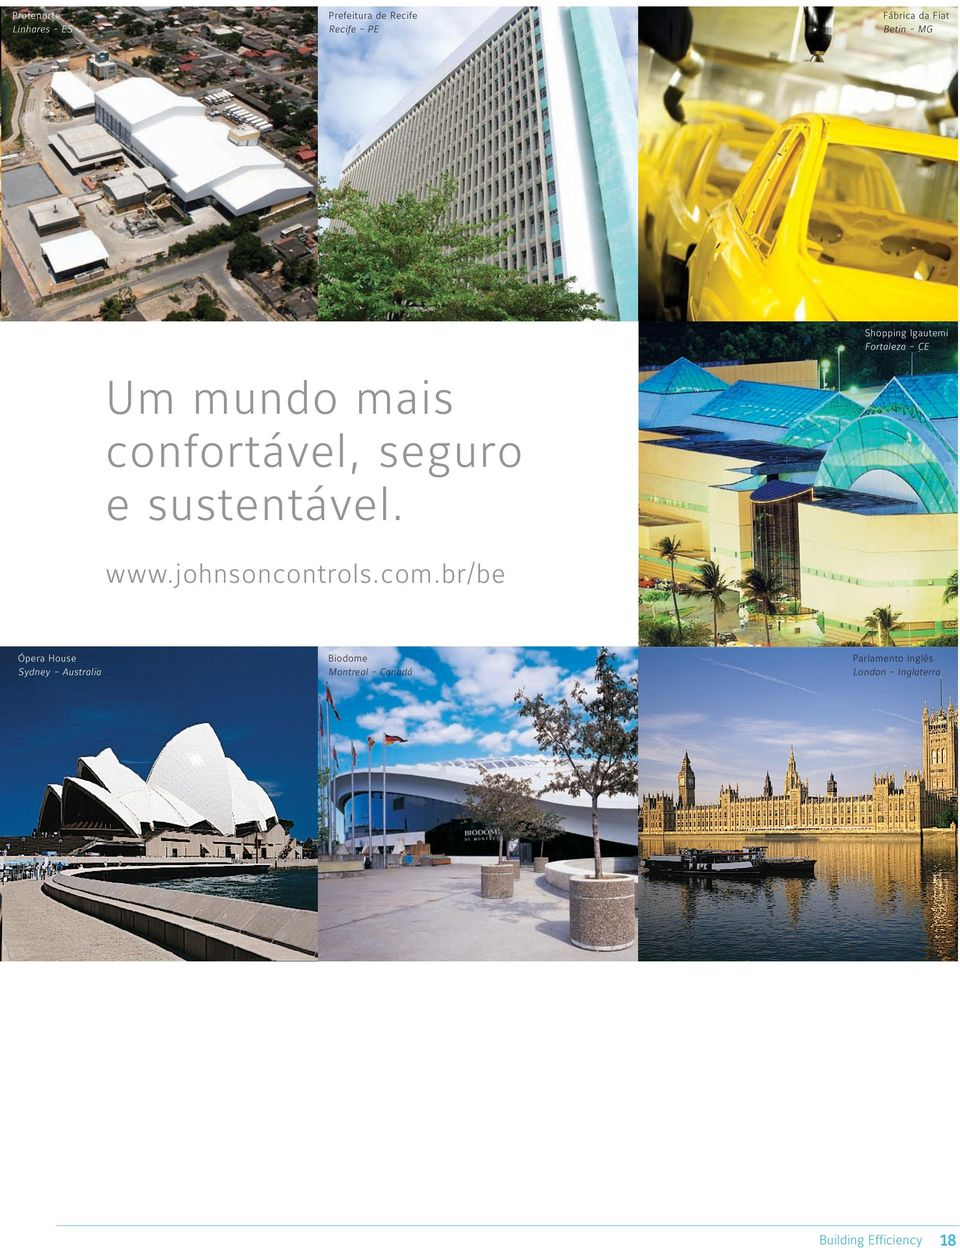 Shopping Igautemi Fortaleza - CE www.johnsoncontrols.com.